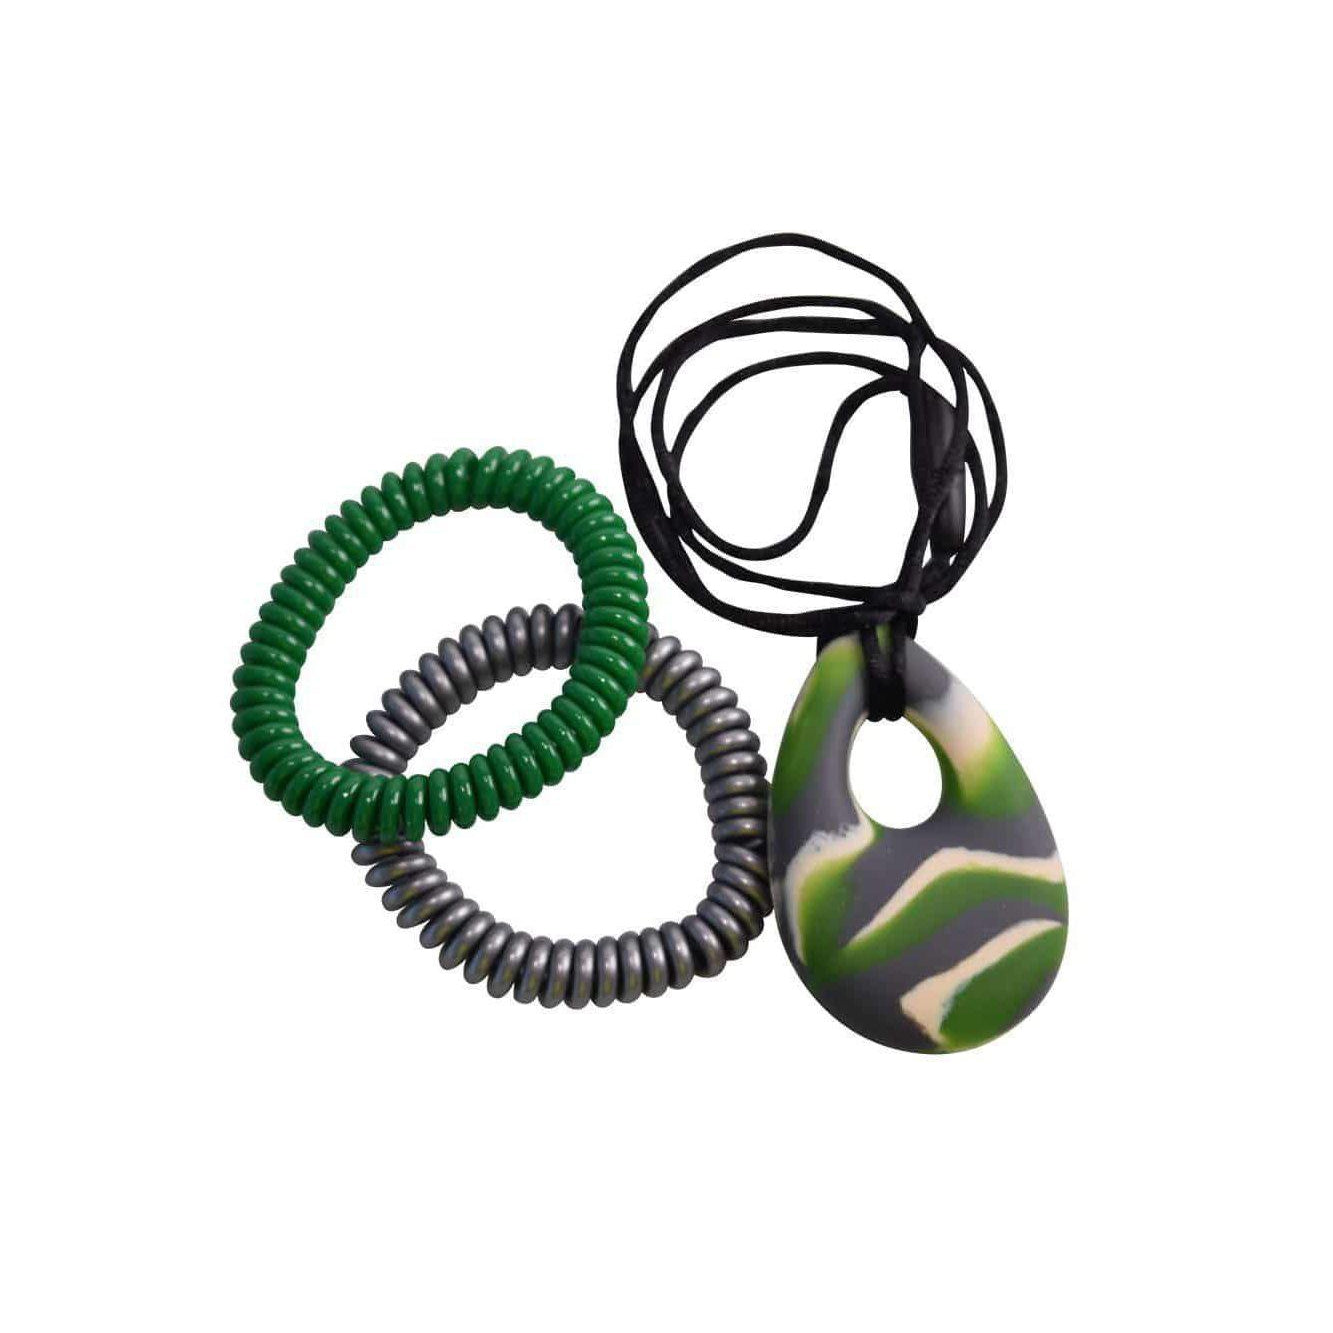 buds oval Chew Pendant With Breakaway Clasp Necklace- Green N Gray Swirl Color